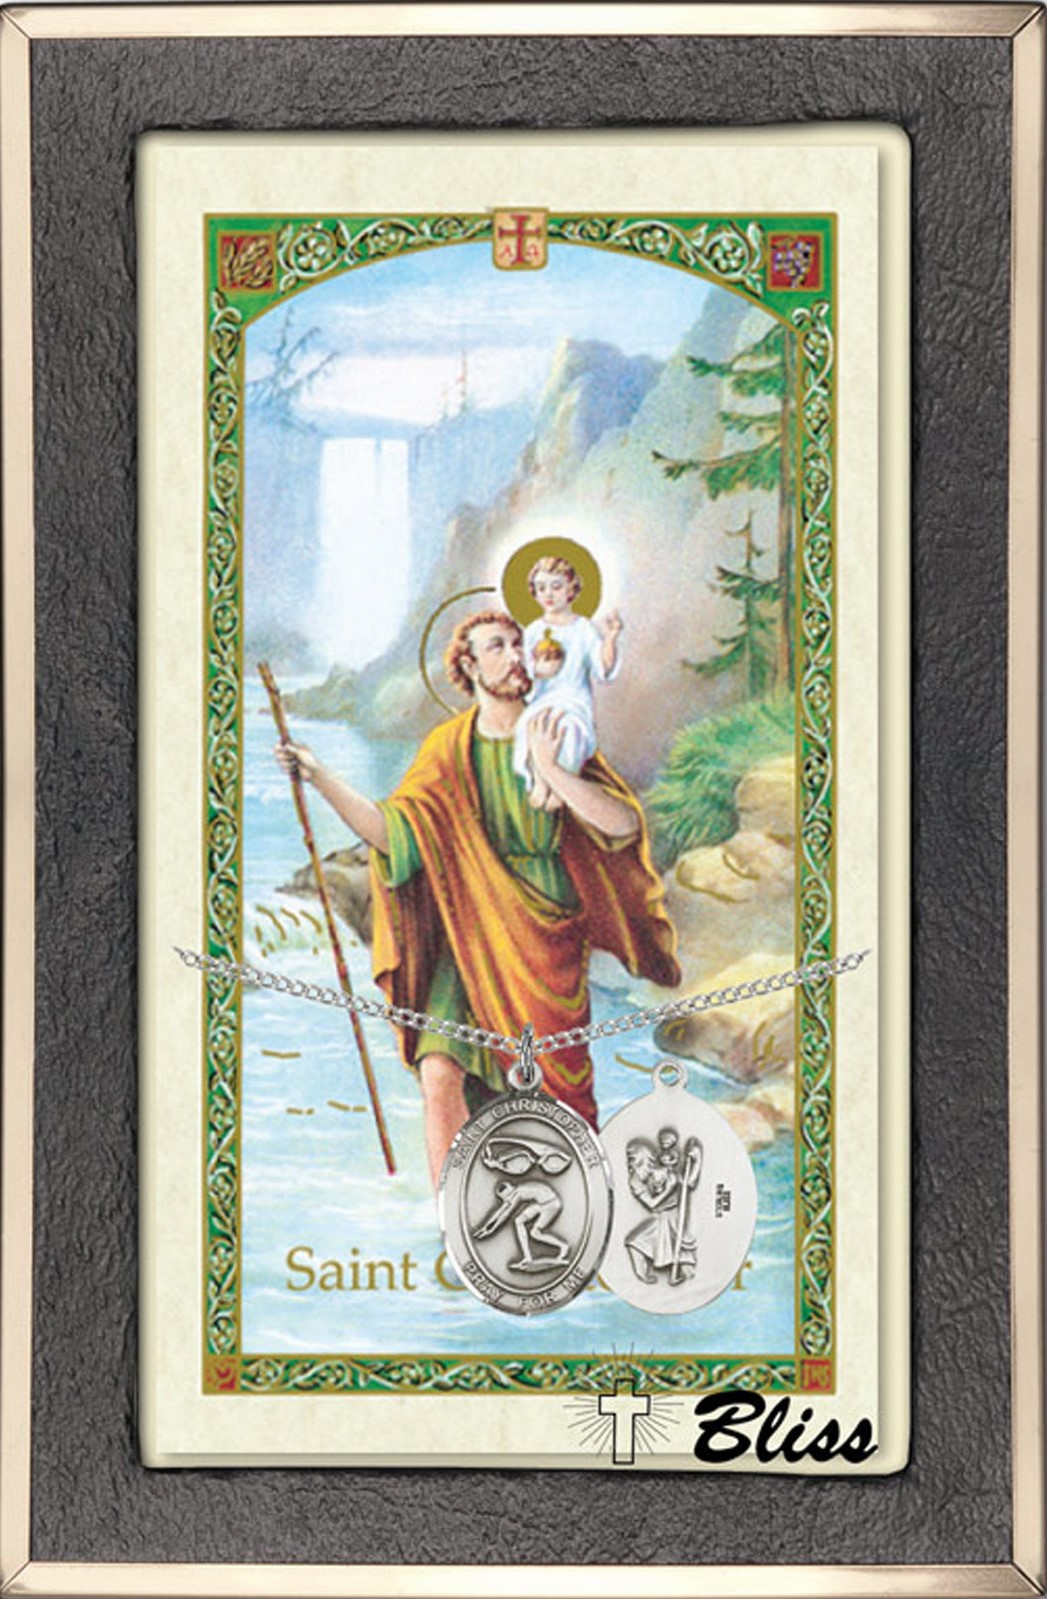 St Christopher Swimming Prayer Card & Sterling-Filled Necklace by Bliss